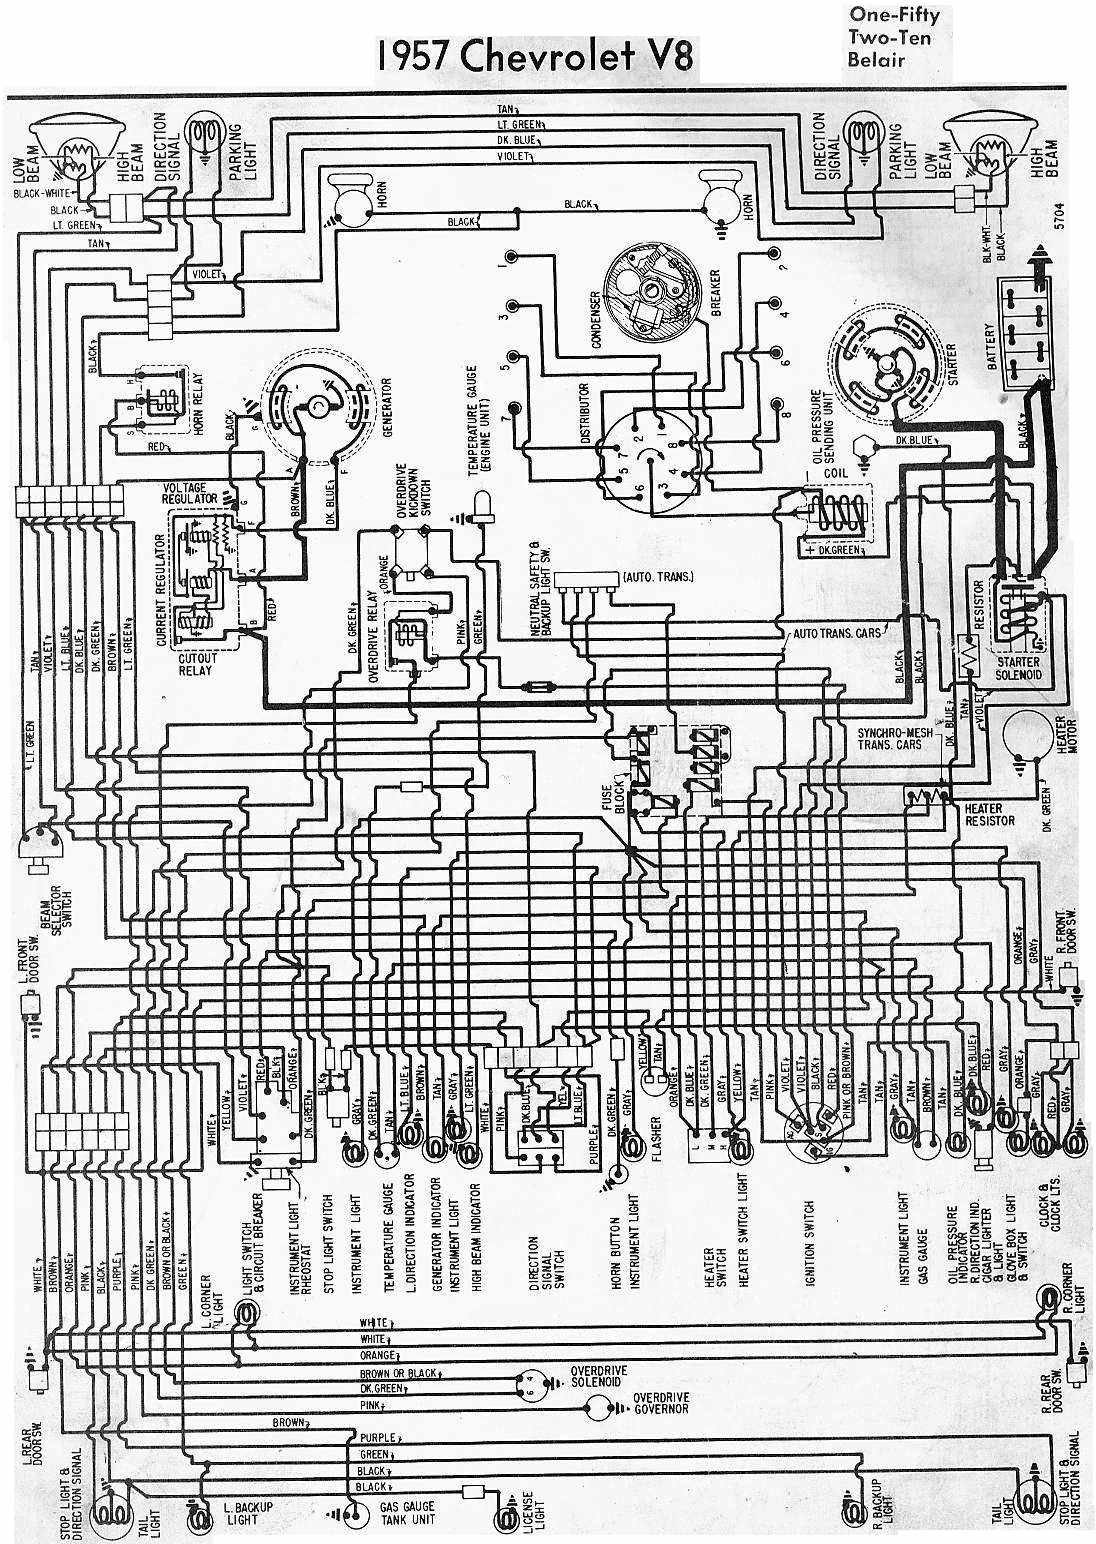 Complete Wiring Schematic Of 1957 Chevrolet V8